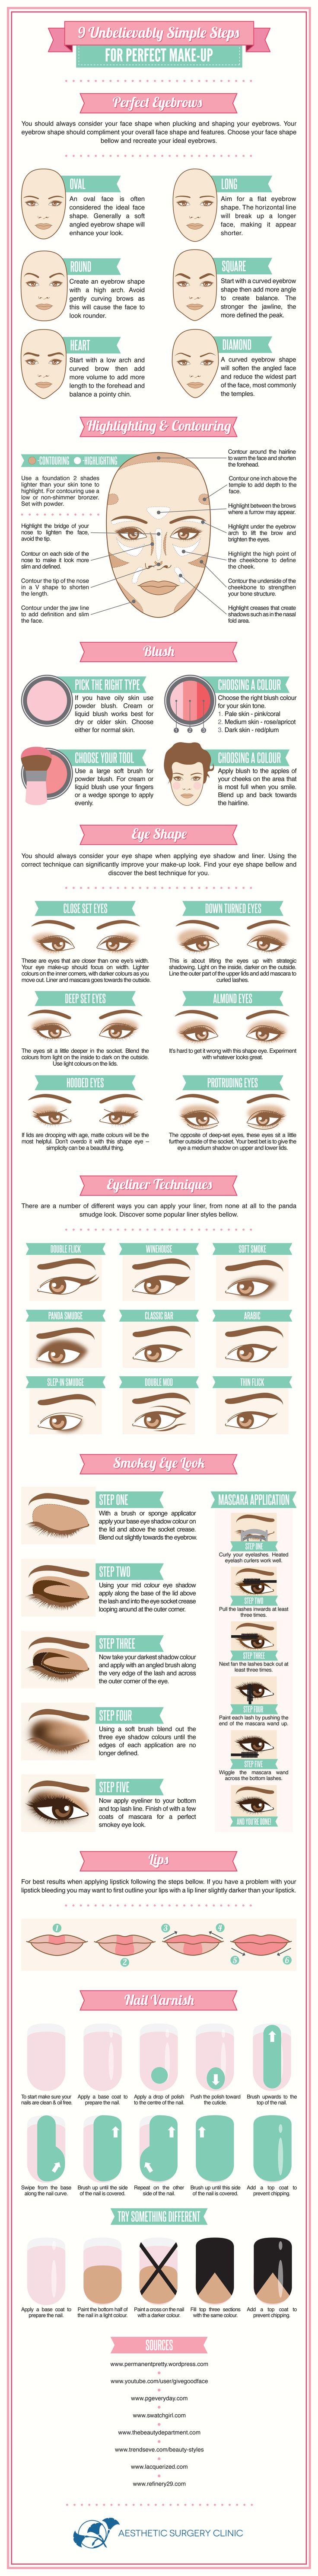 We've discovered a very handy infographic which shows exactly how to master simple make-up techniques.